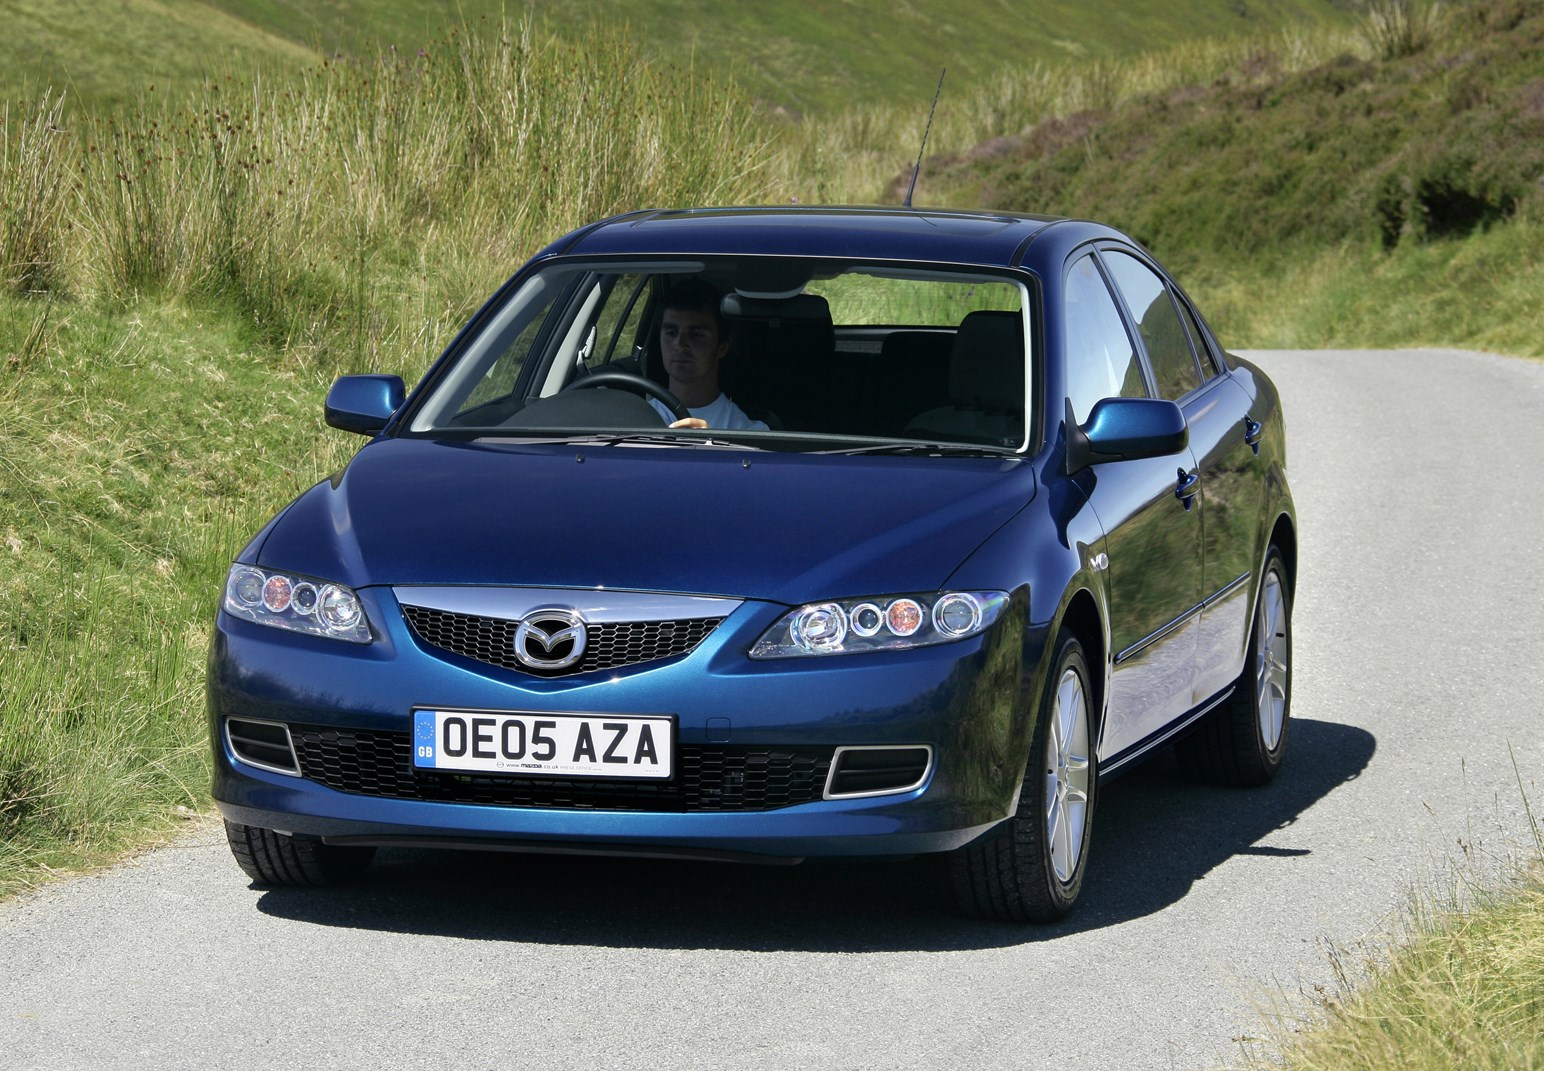 Mazda 6 Hatchback Review 2002 2007 Parkers 03 2 3 Engine For Sale How Much Is It To Insure